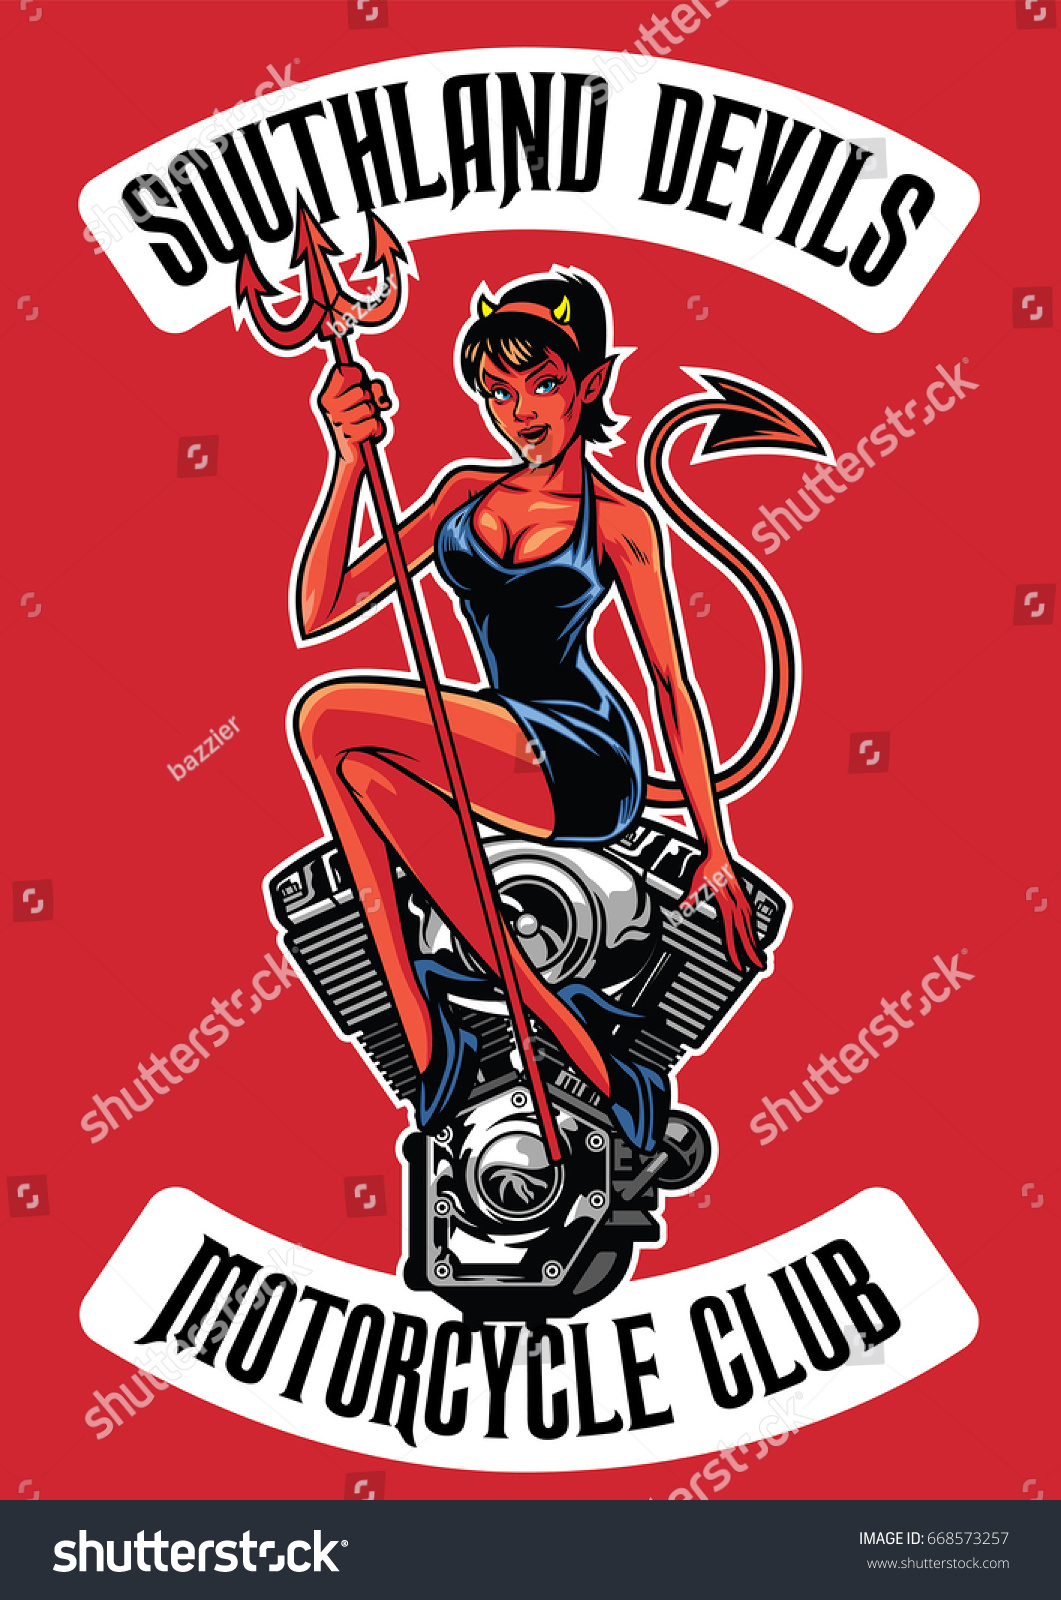 Sexy Devil Motorcycle Engine Stock Vector 668573257 - Shutterstock